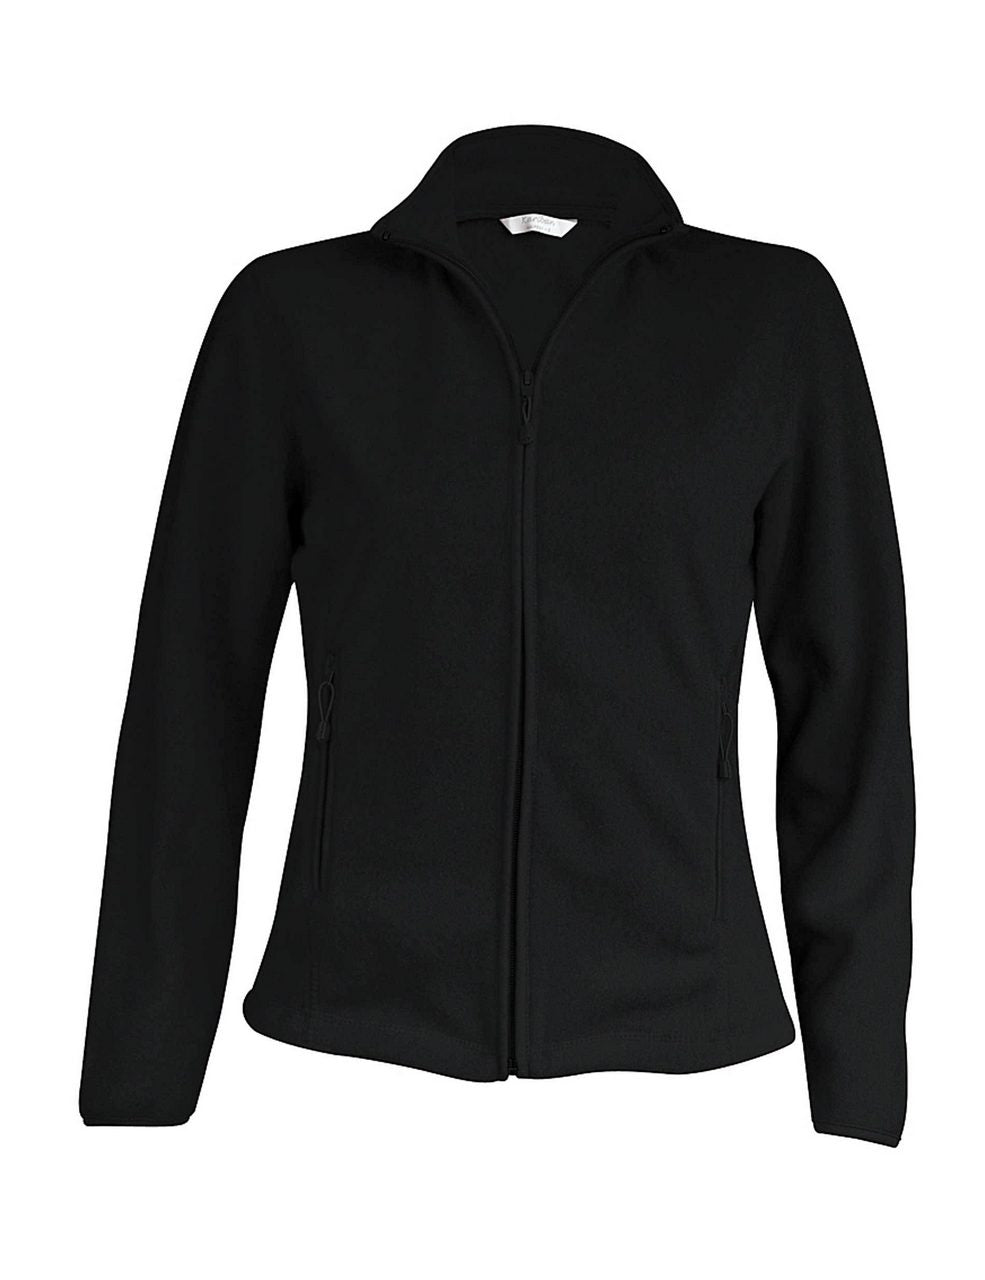 MAUREEN - LADIES' FULL ZIP MICROFLEECE JACKET